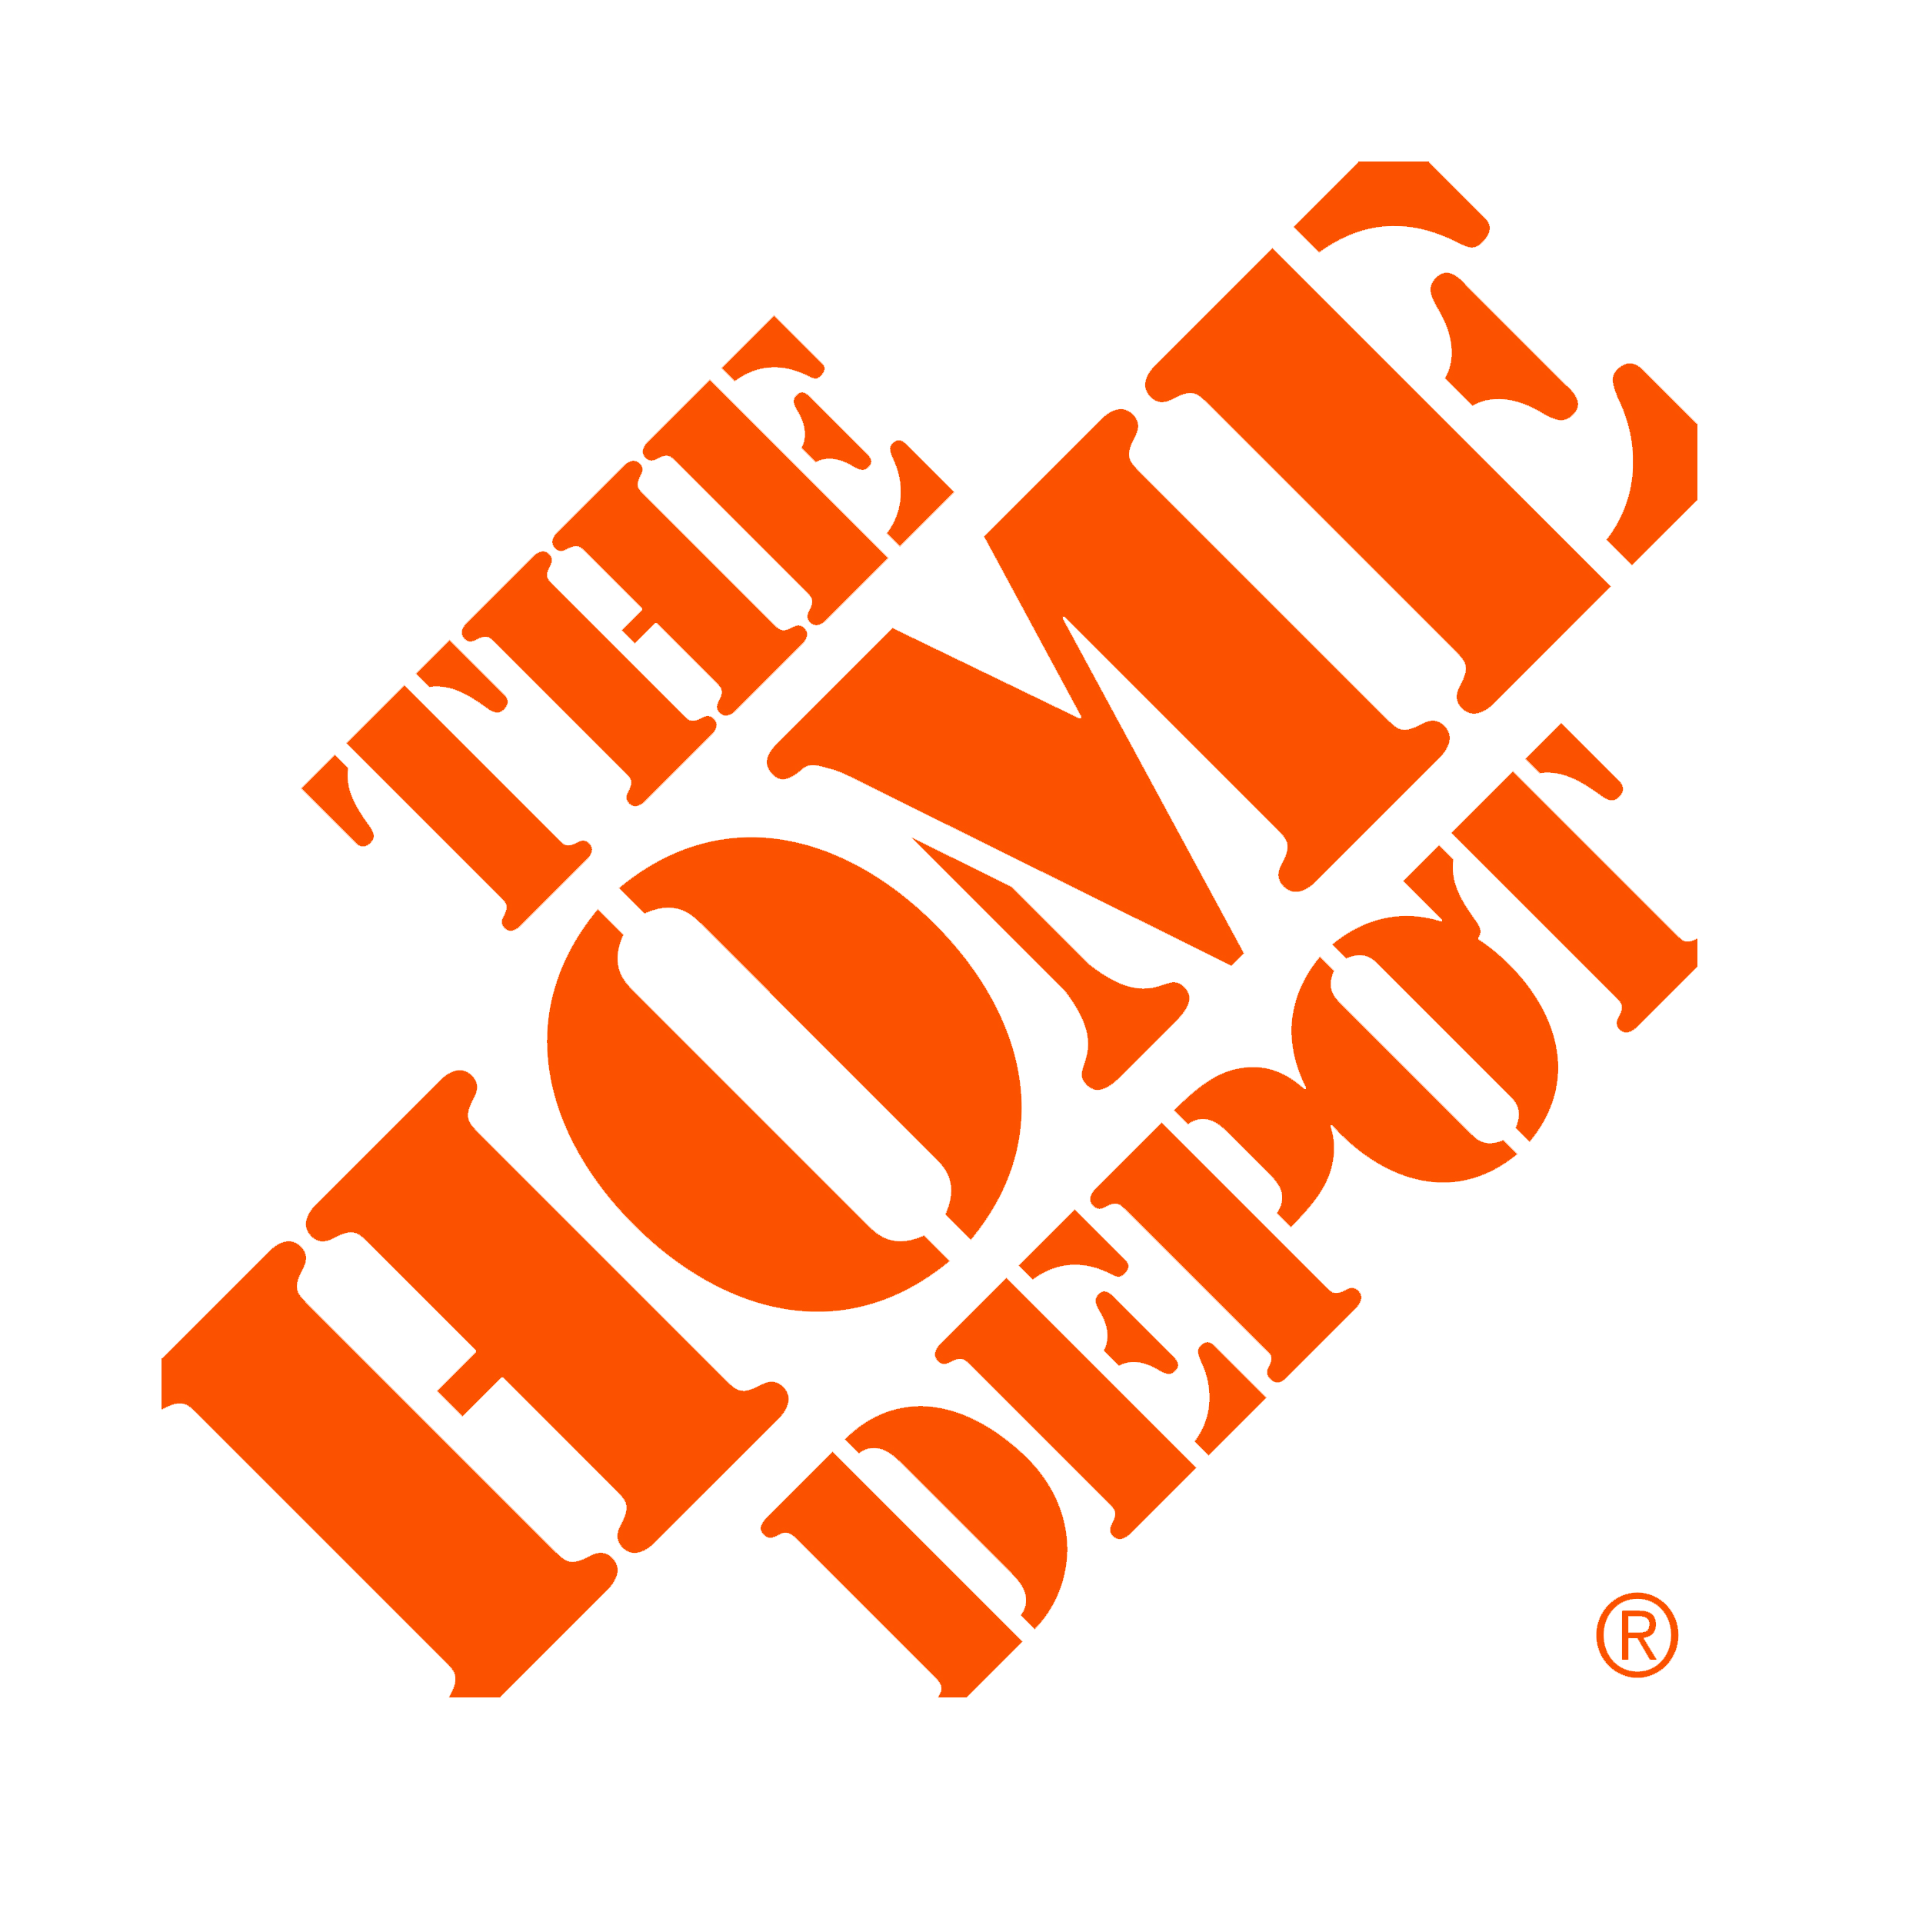 The home depot logo png. Retail business transprent download